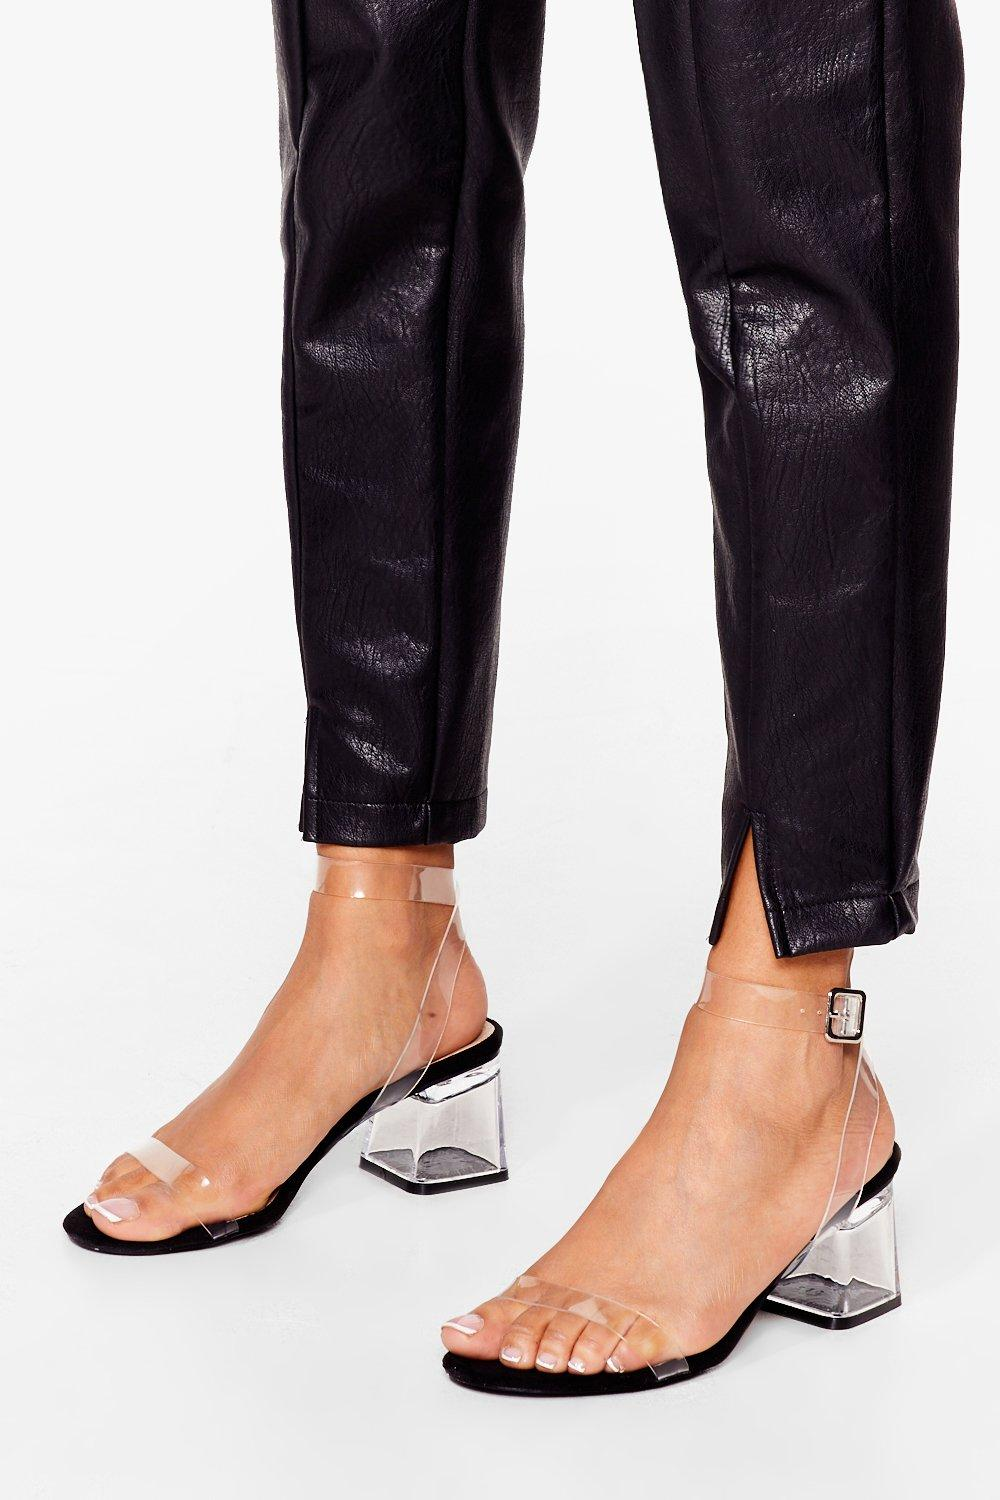 clear the air low heel shop clothes at nasty gal